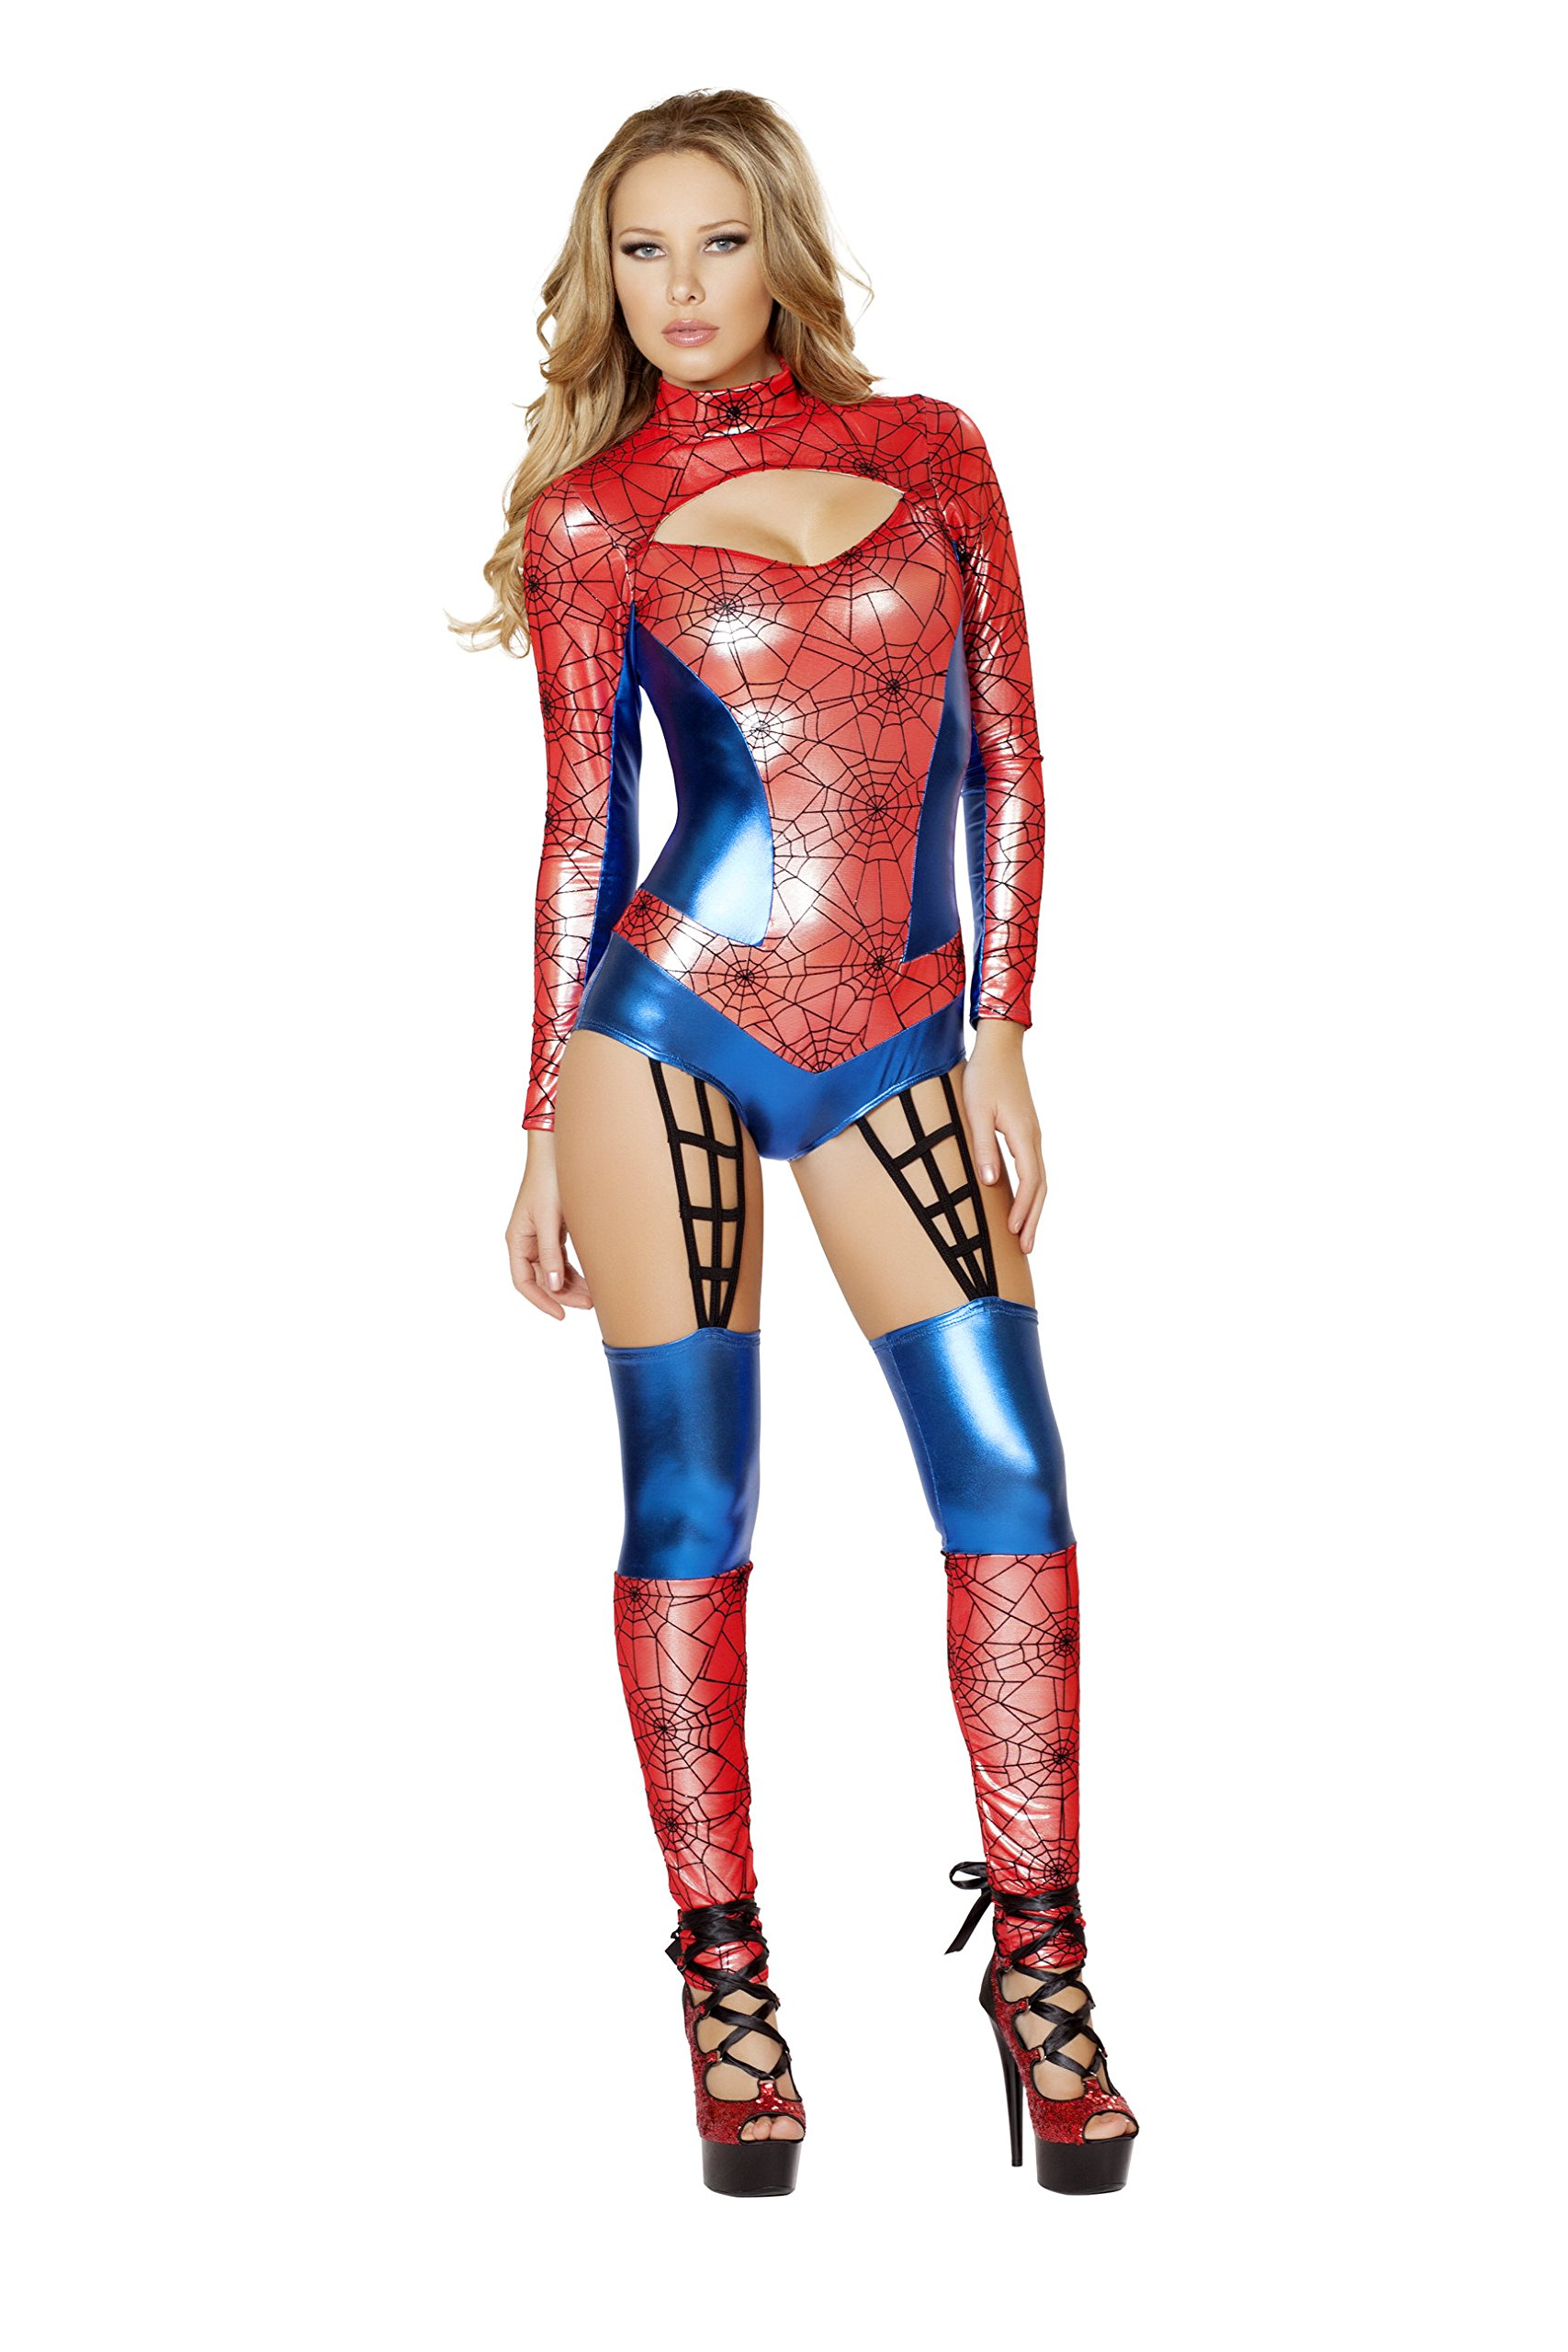 - 81FxPdKshOL - 1 Piece Miss Spiderman Superhero Red & Blue Jumpsuit Costume